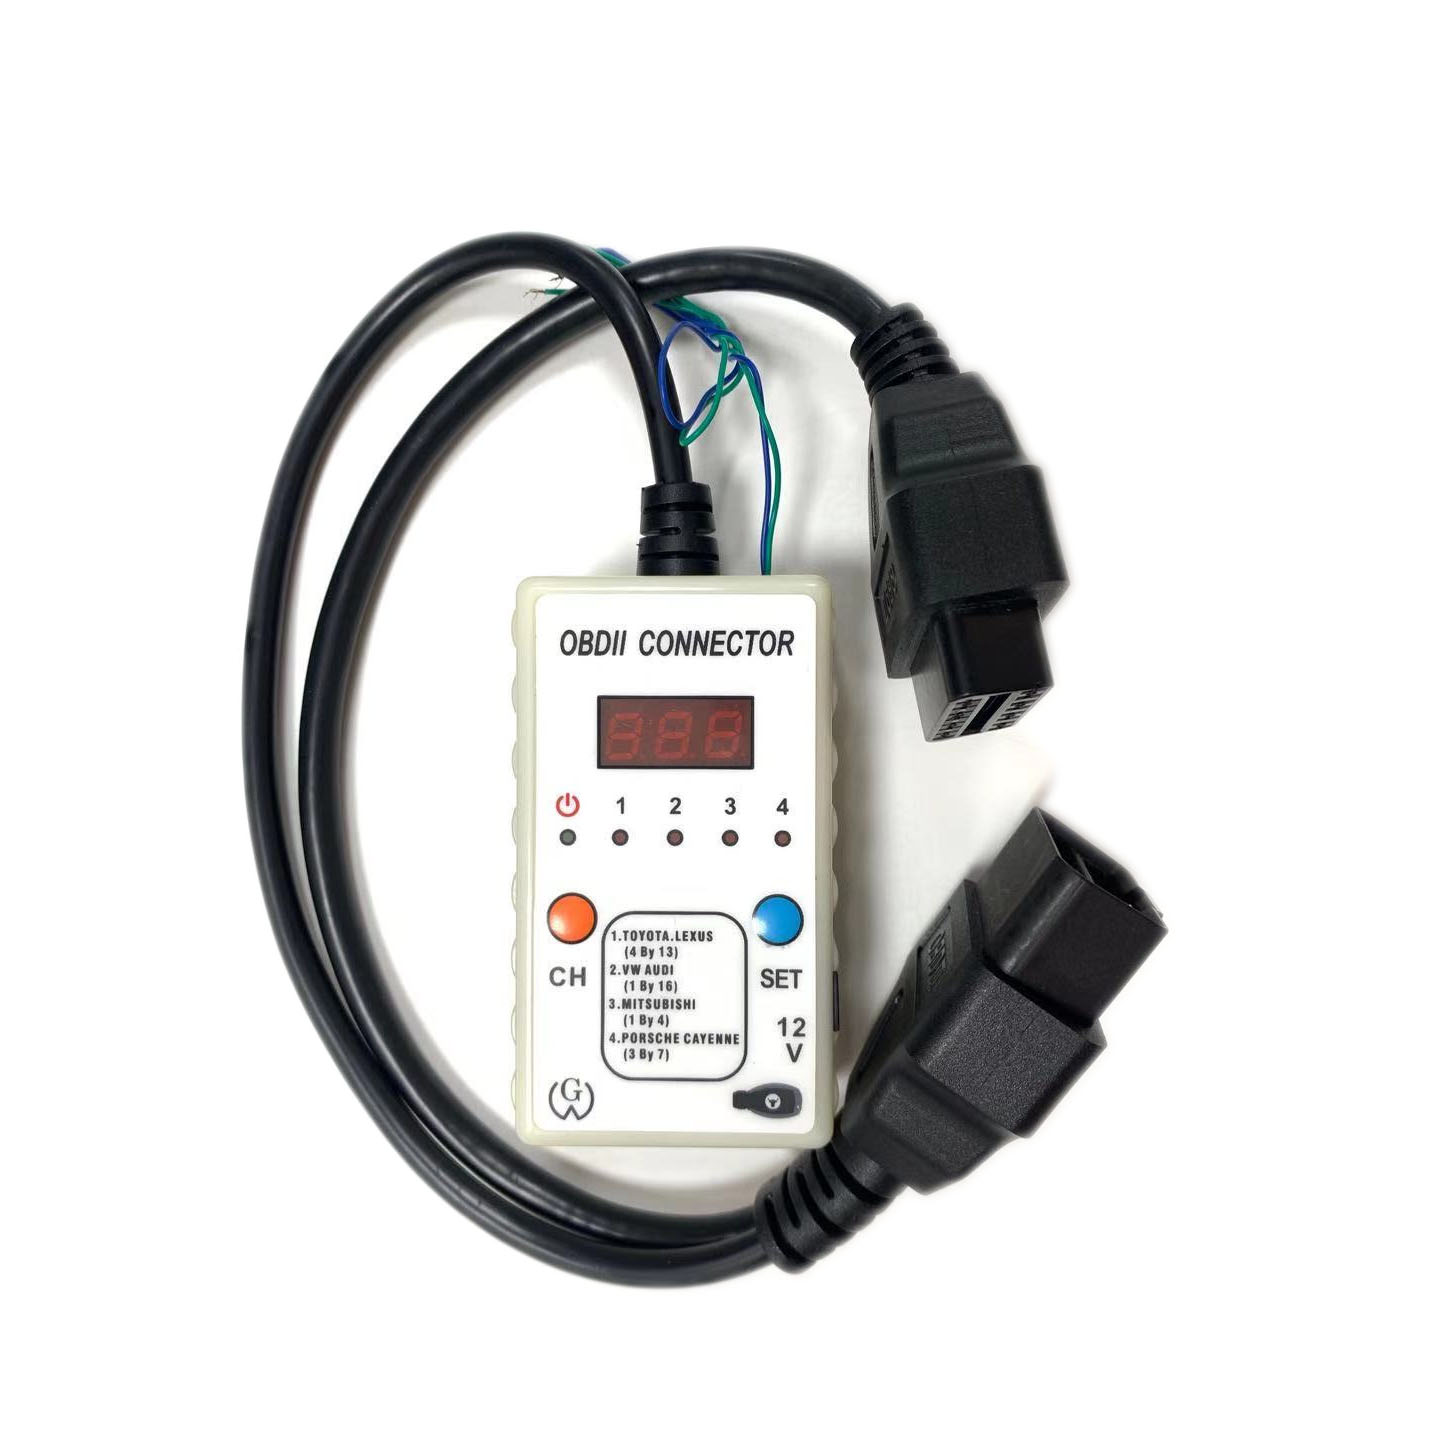 OBD II Voltage Detector &  OBDII Connector For Toyota ECU /Mitsubishi Remote programming/ Audi A6L /Porsche